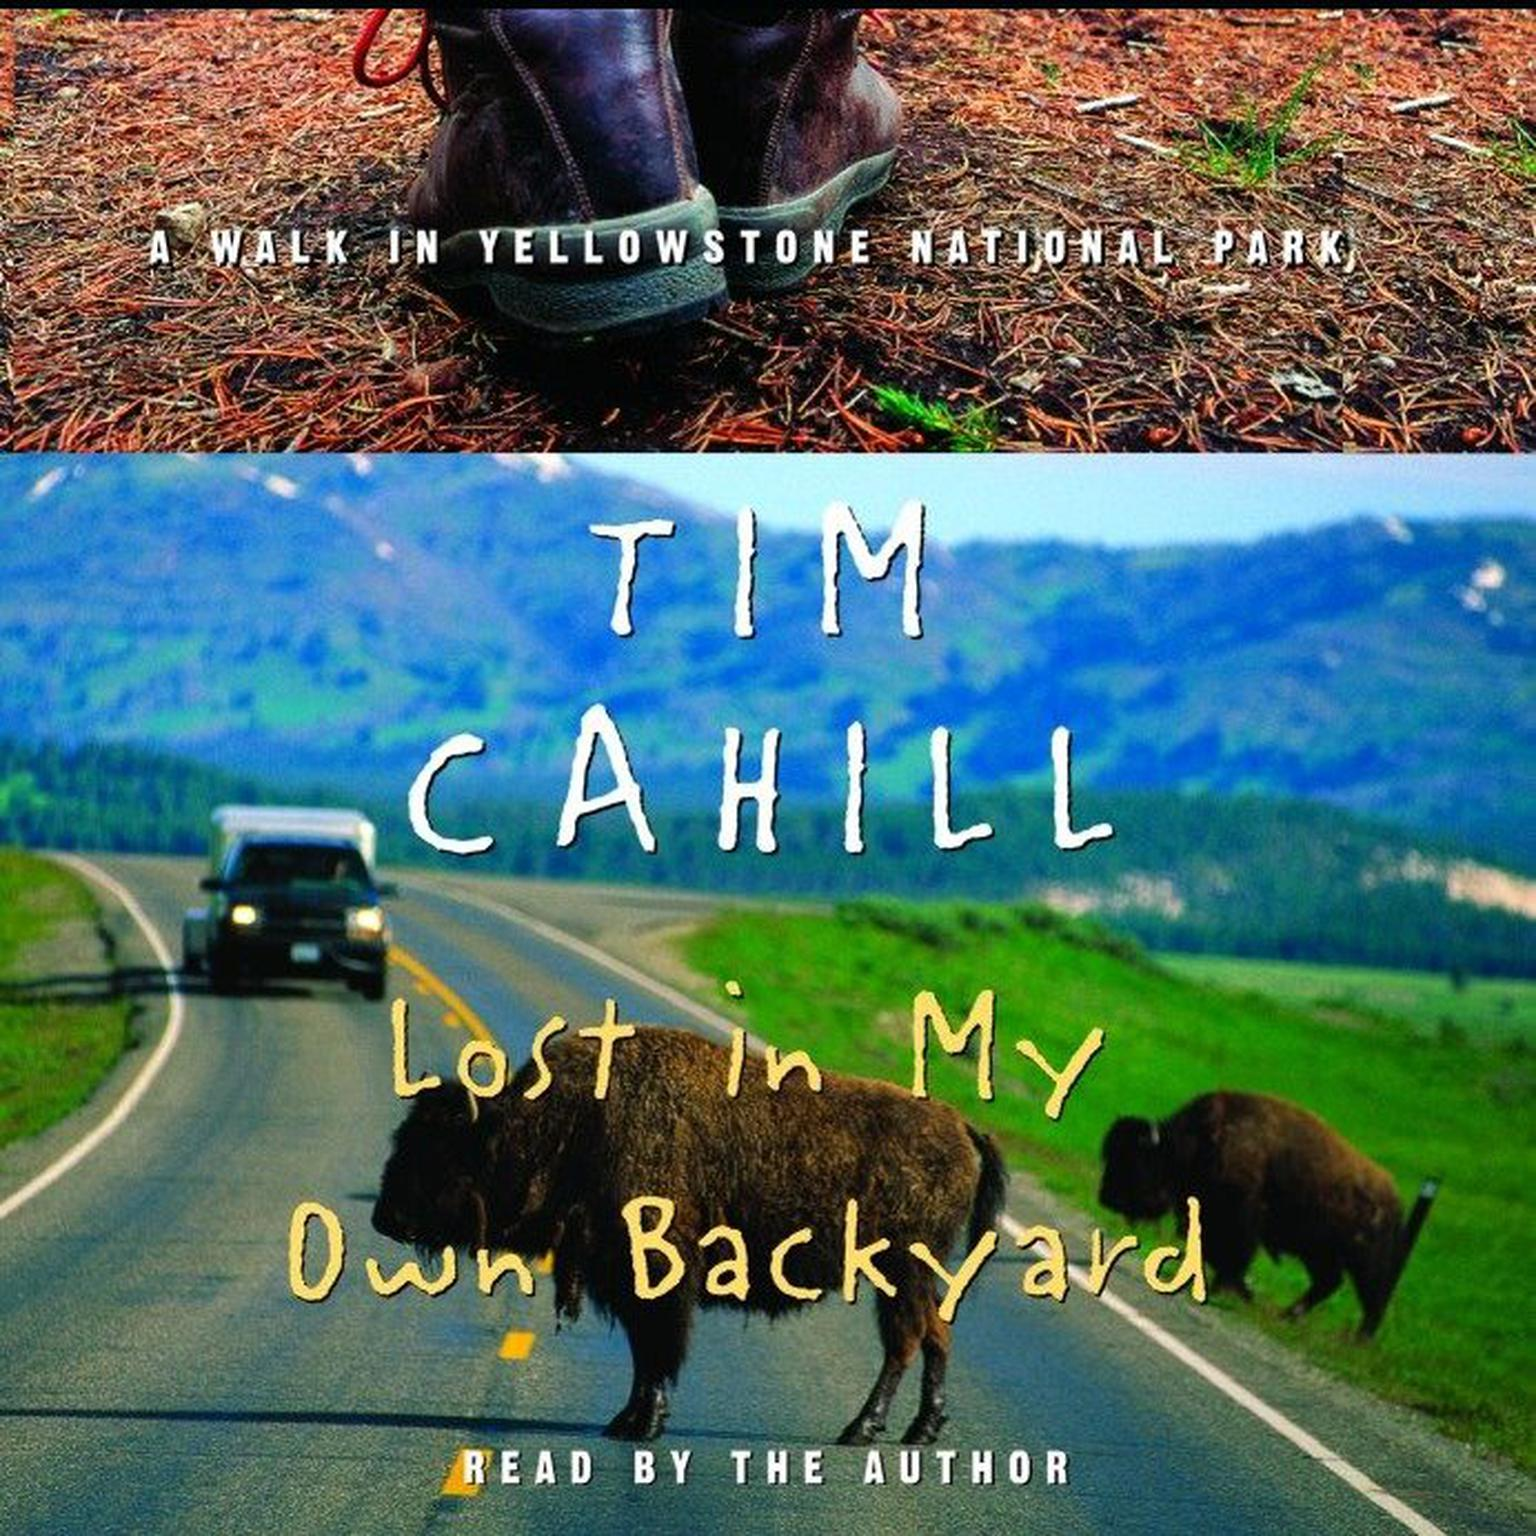 Printable Lost in My Own Backyard: A Walk in Yellowstone National Park Audiobook Cover Art